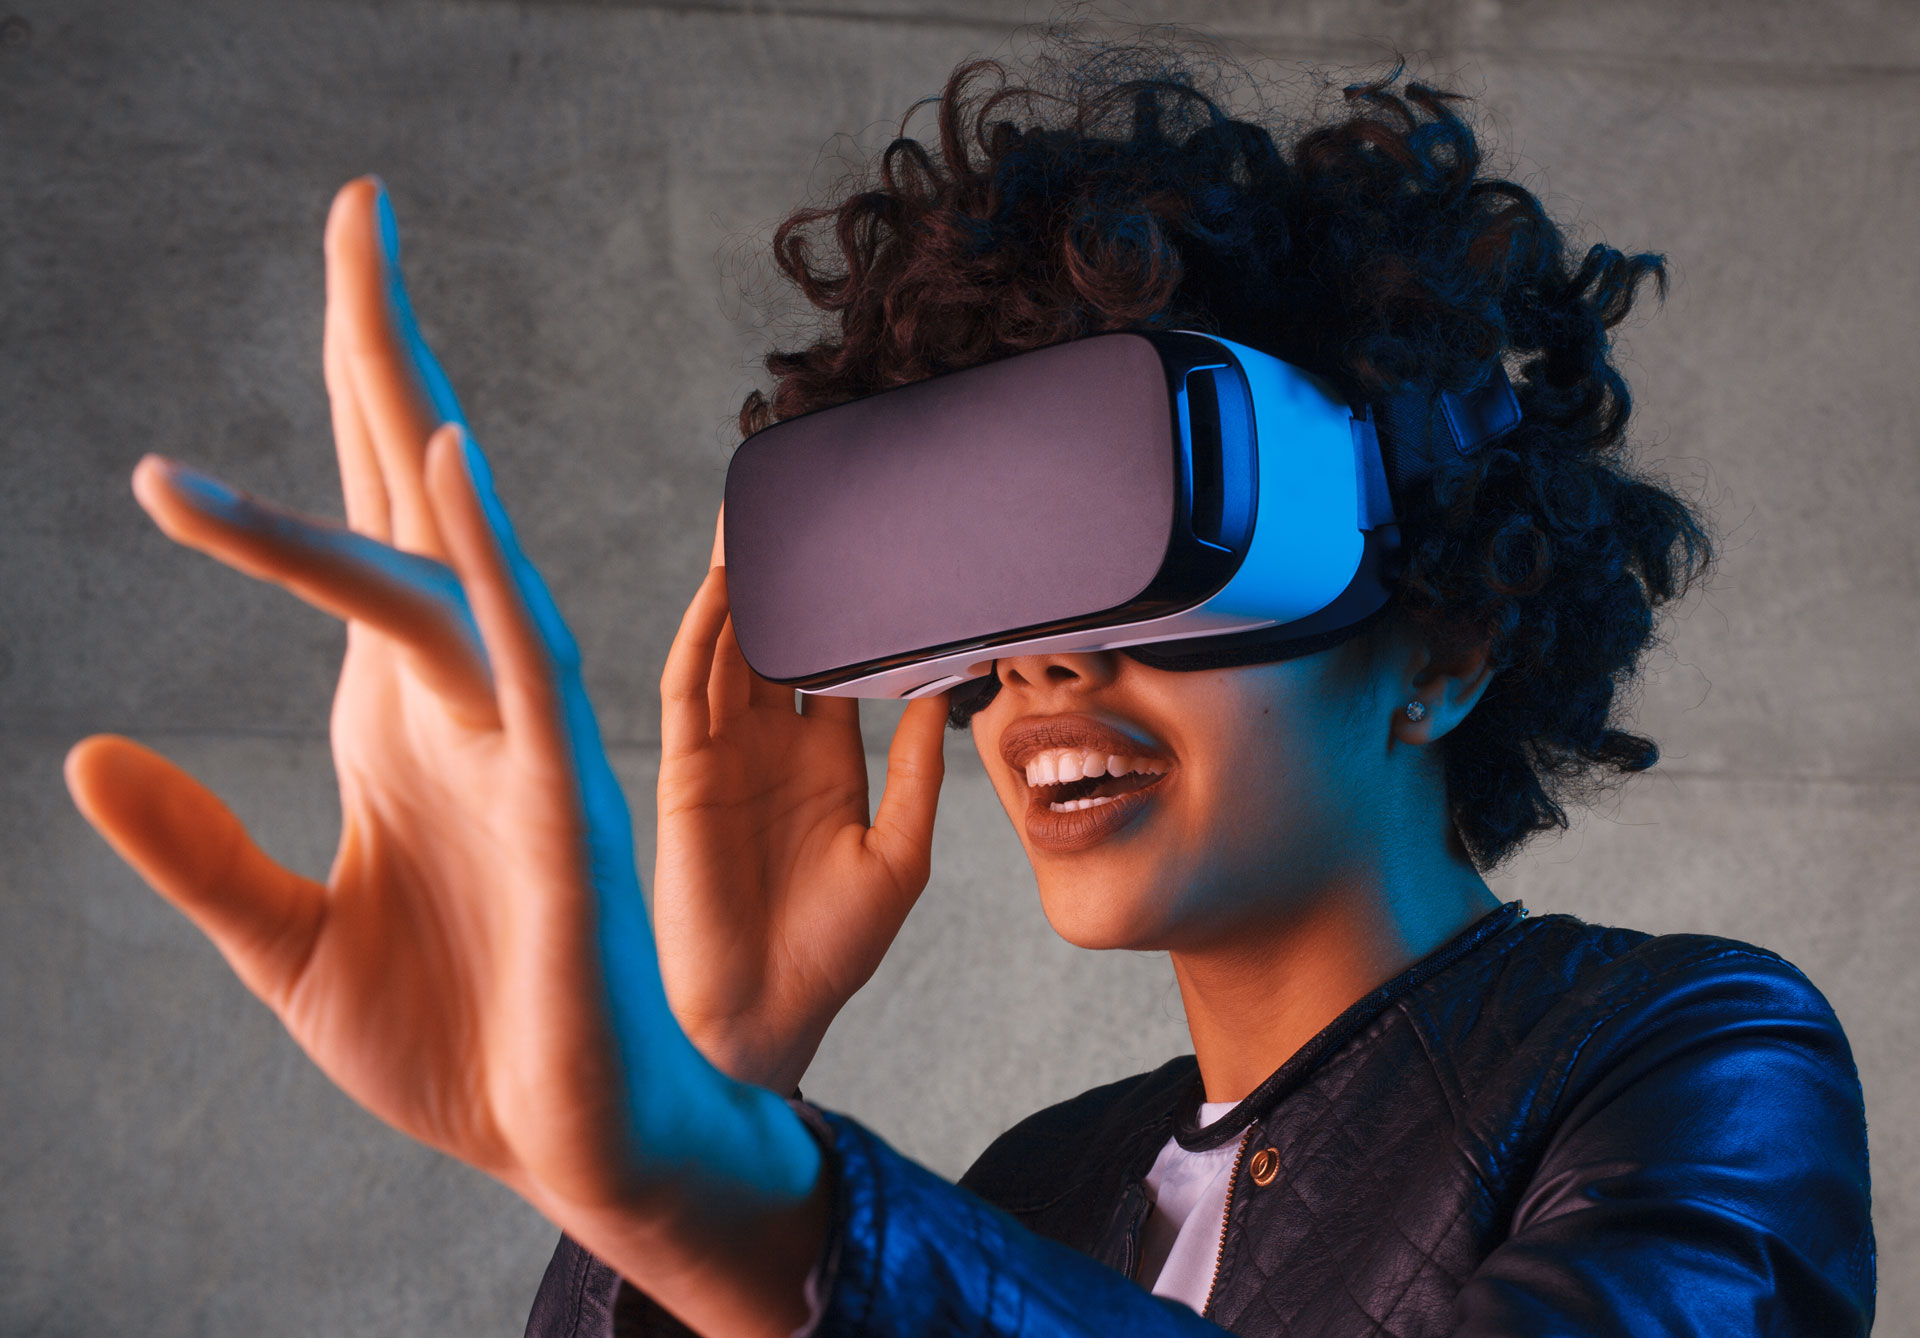 Virtual reality awareness has dropped significantly since 2017